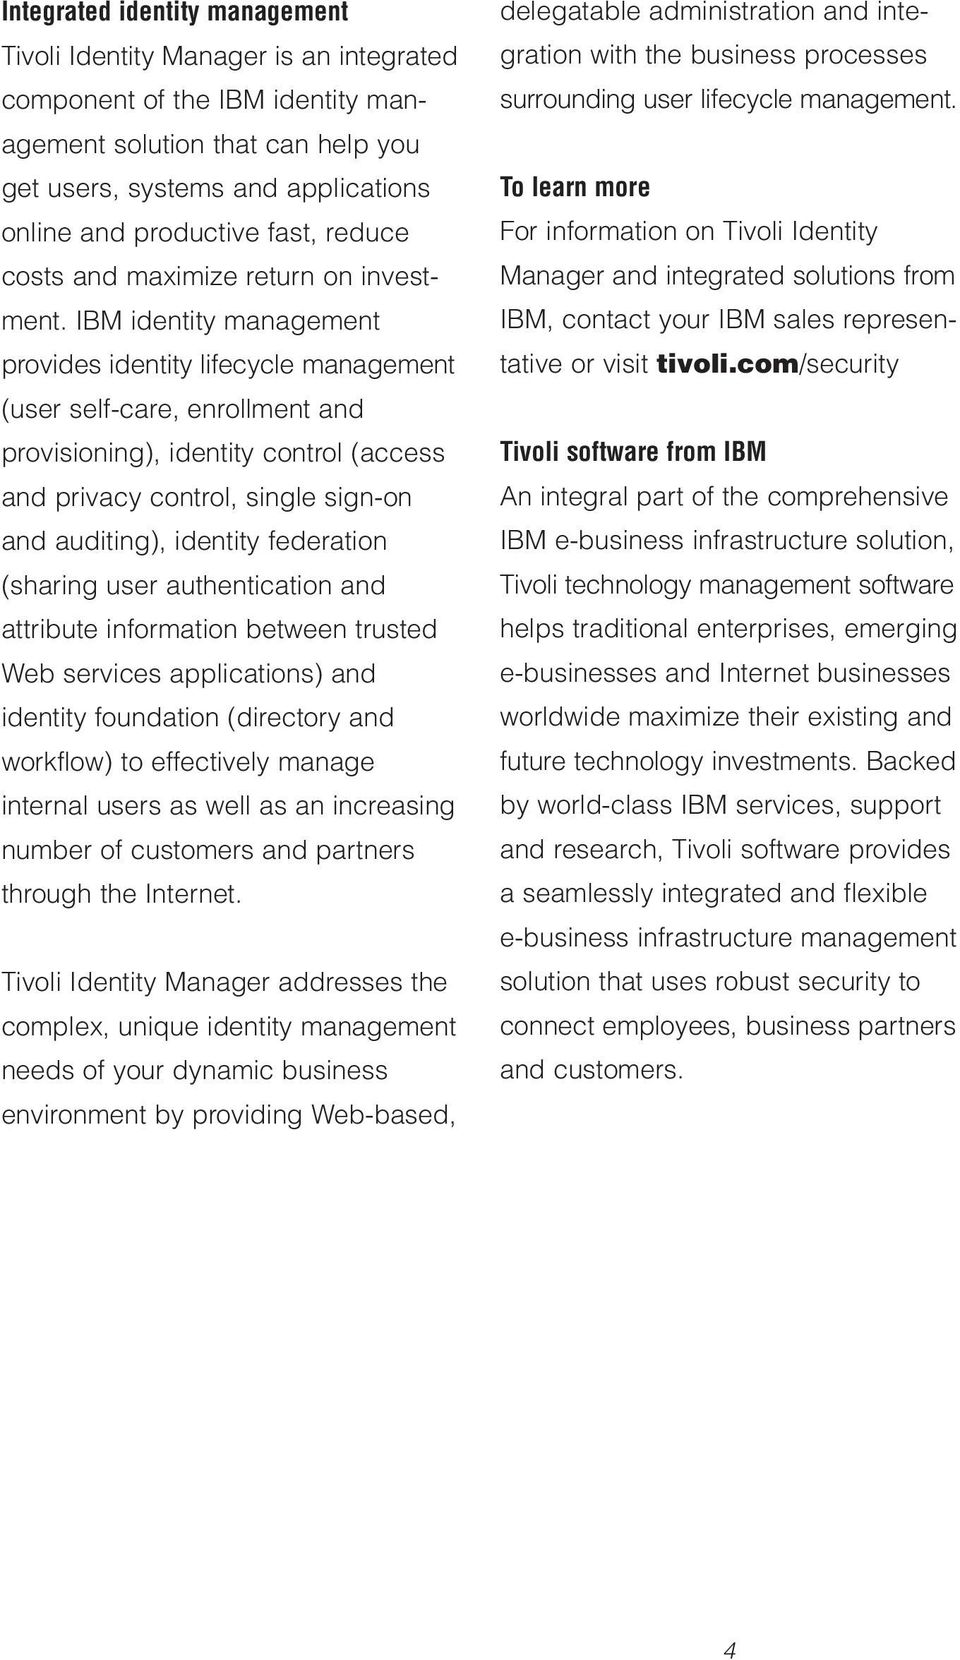 IBM identity management provides identity lifecycle management (user self-care, enrollment and provisioning), identity control (access and privacy control, single sign-on and auditing), identity